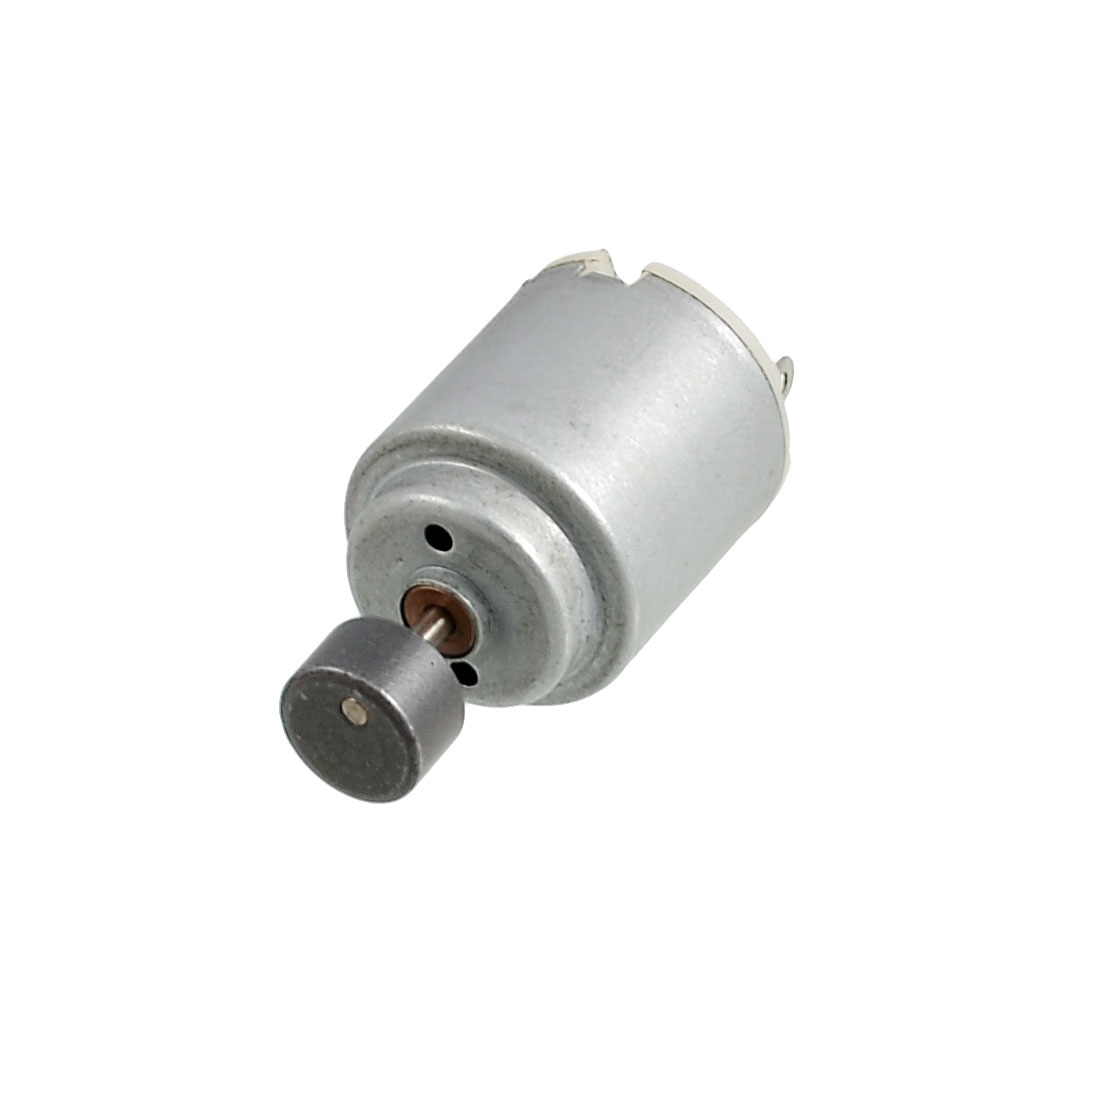 DC 4.5V 0.035A 12700RPM Mini Vibrating Toy Vibration Motor